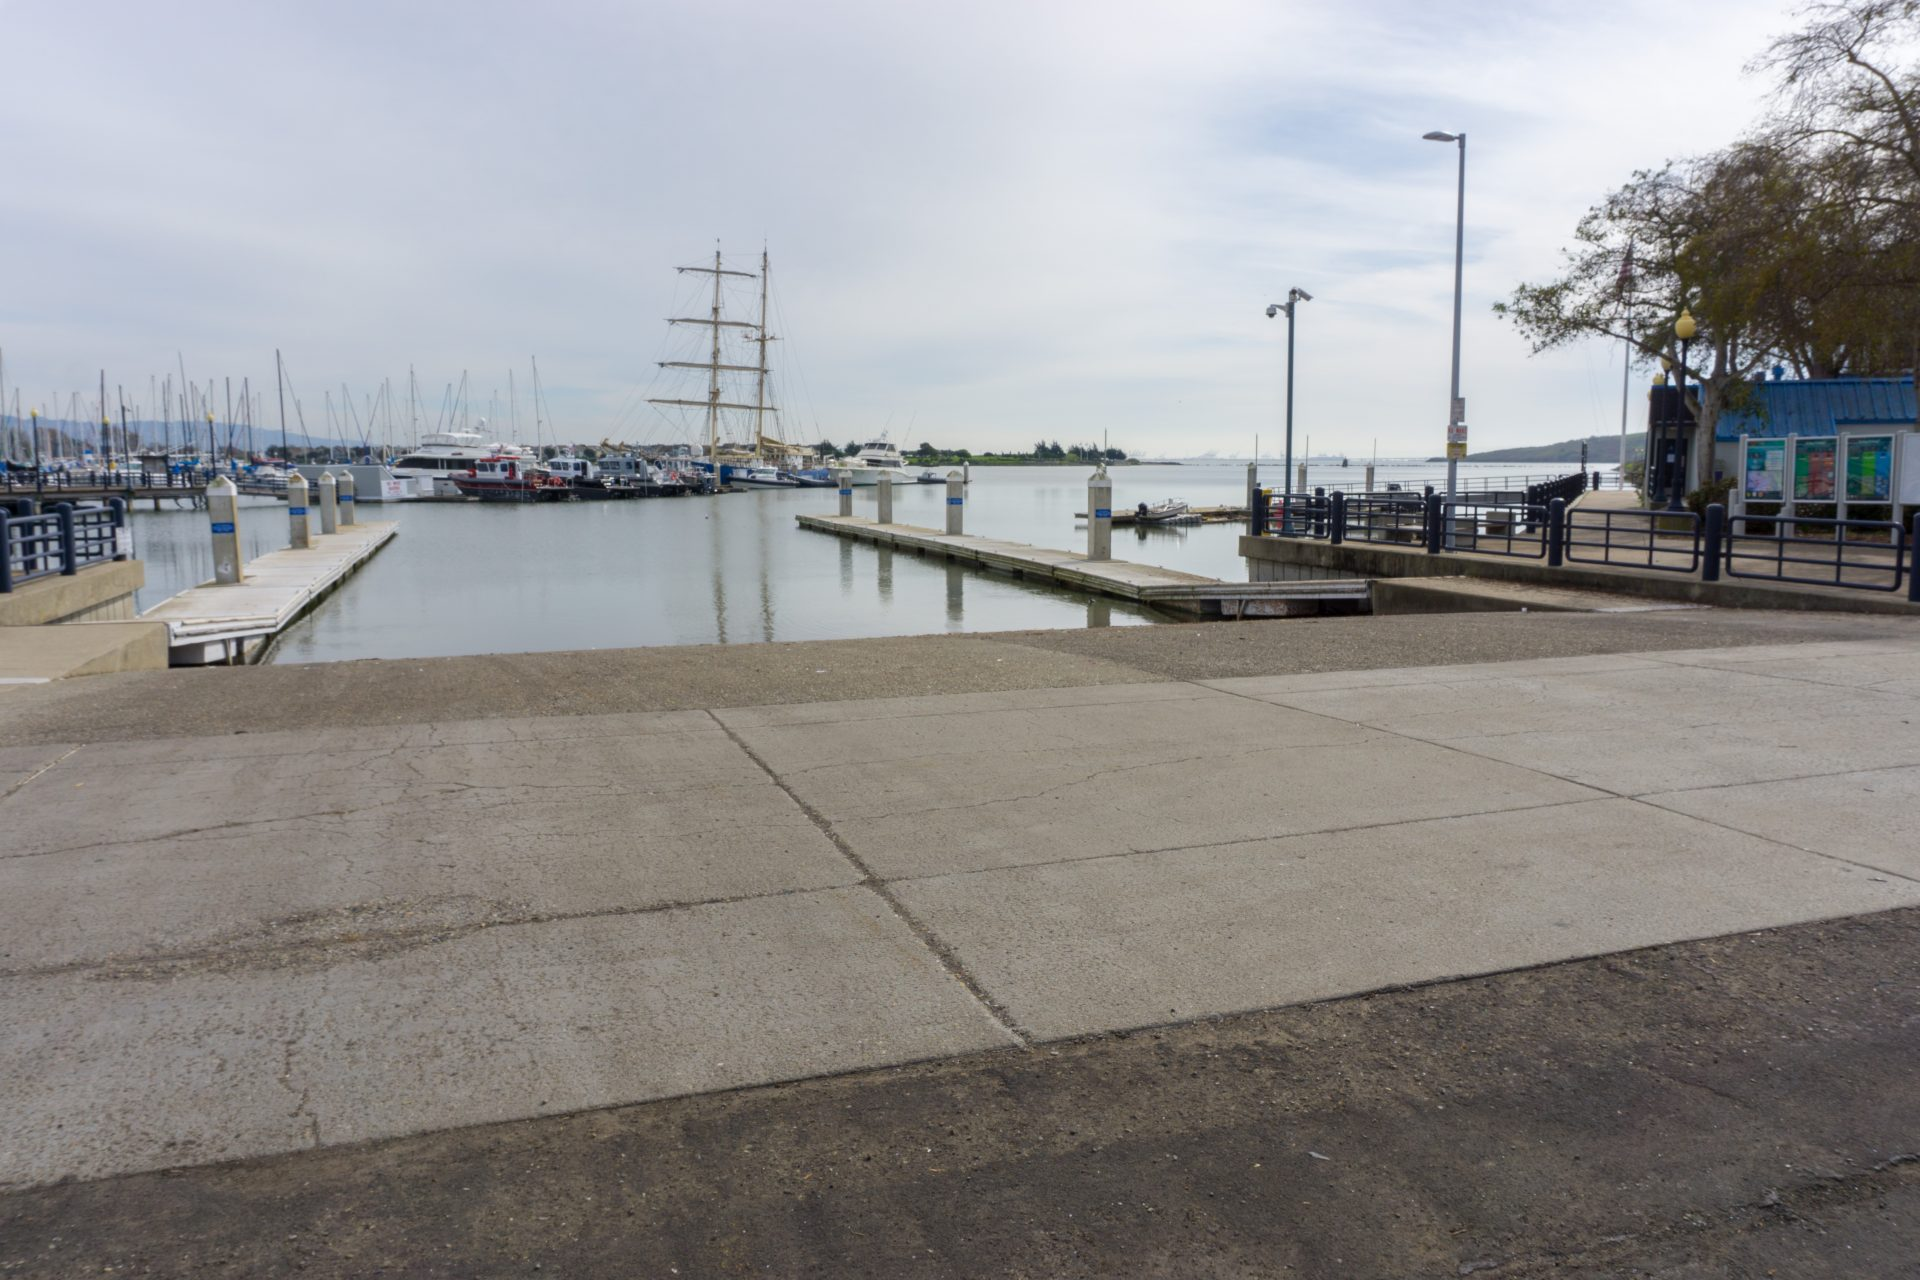 Boat ramp descends into water, marina with boats moored beyond